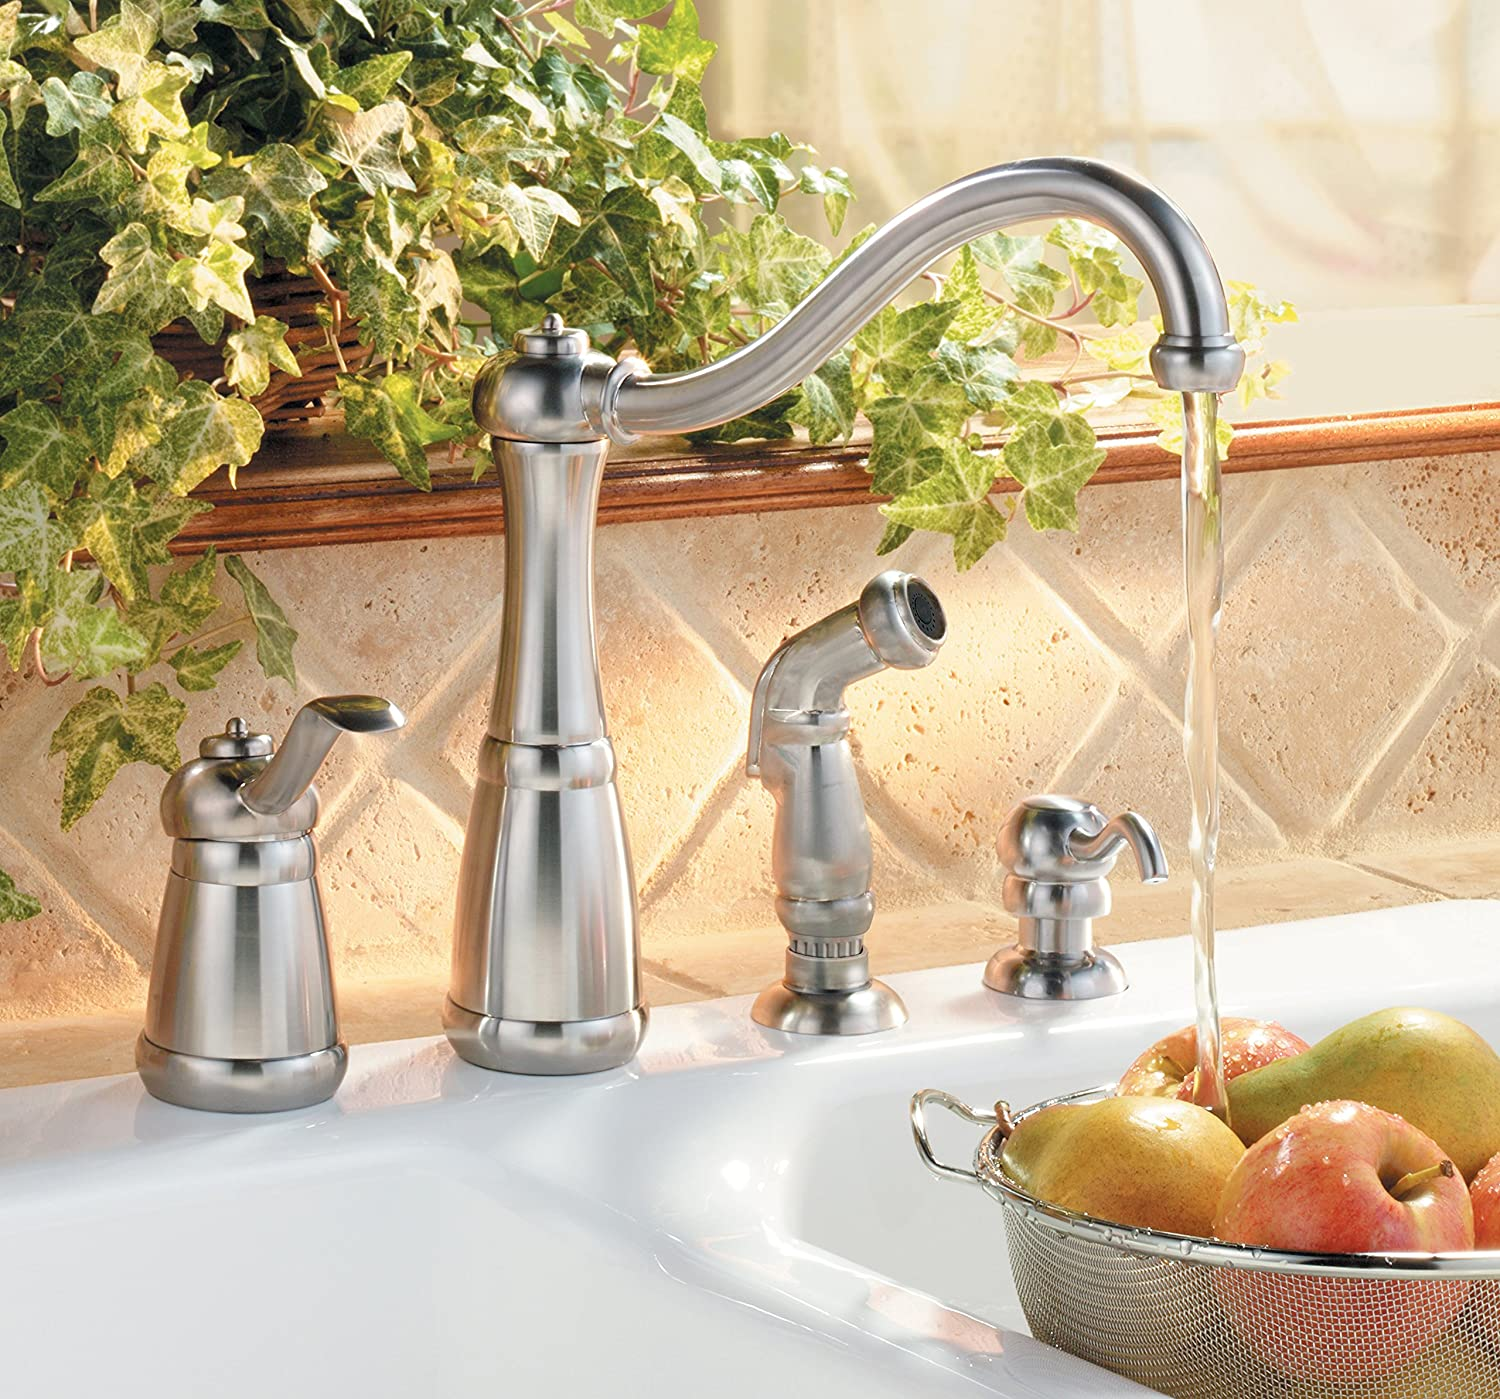 pfister lf0264nss marielle 1 handle kitchen faucet with side spray